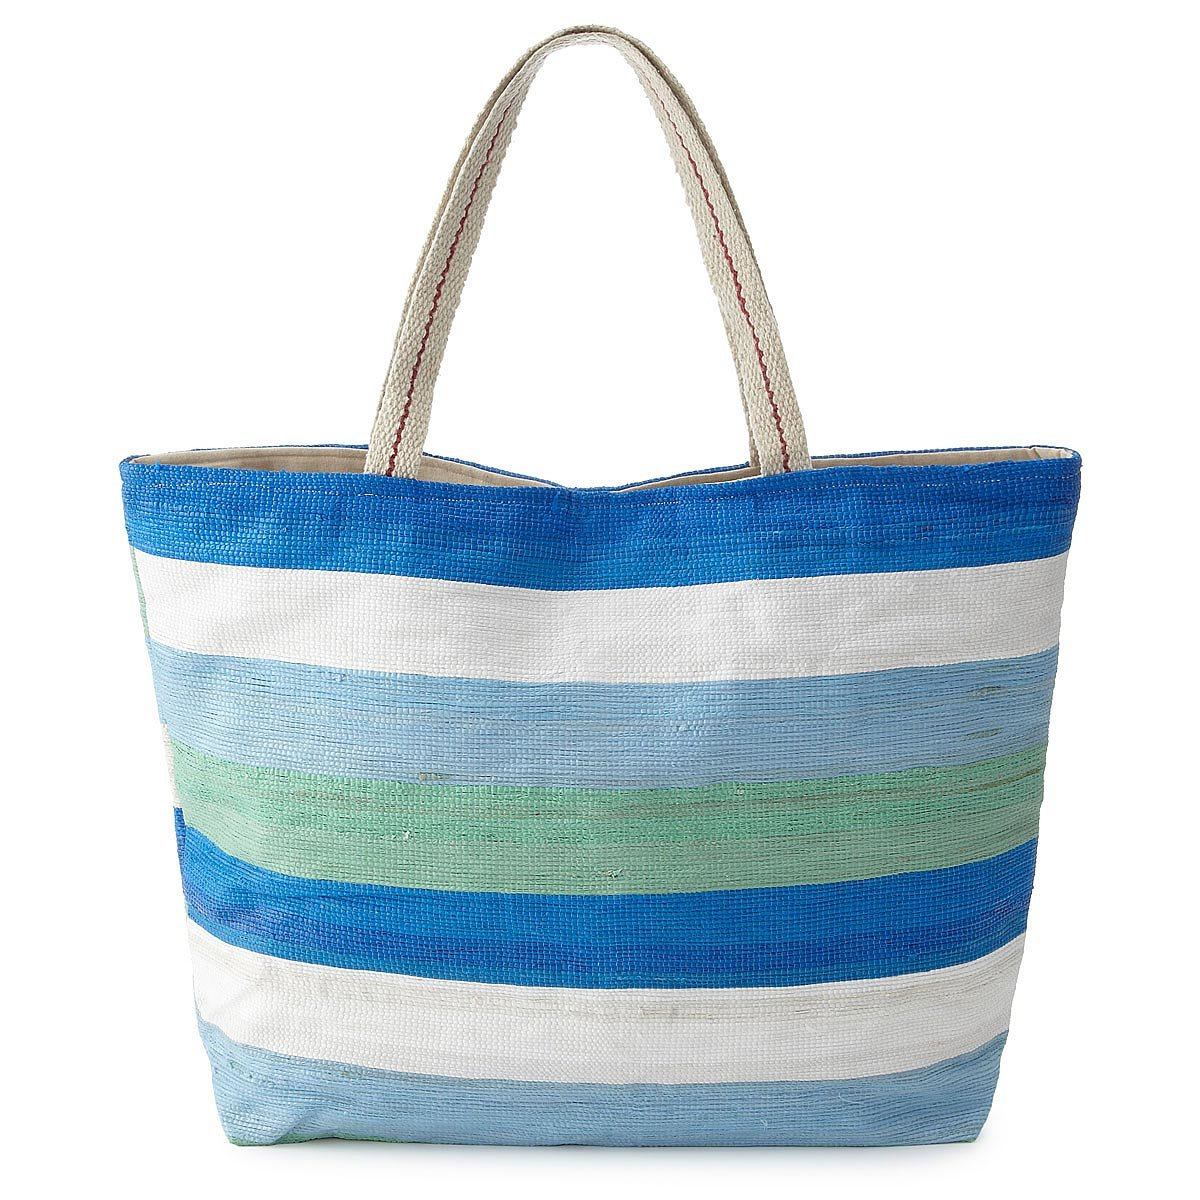 Recycled Plastic Beach Tote Recycled Bags Summer Eco